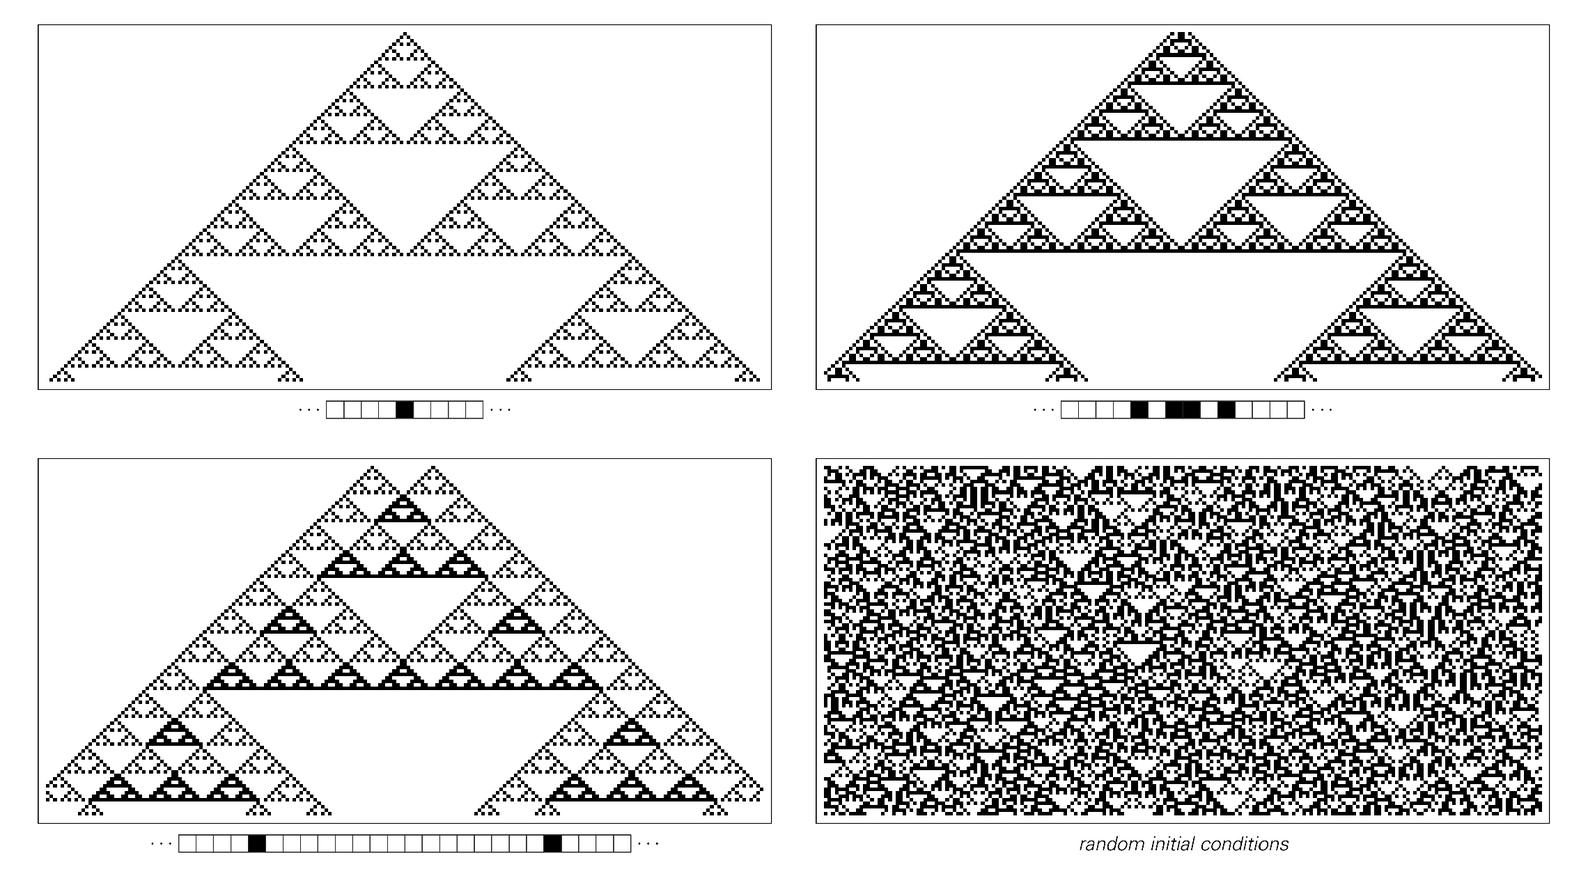 Patterns generated by rule 90 with various initial conditions